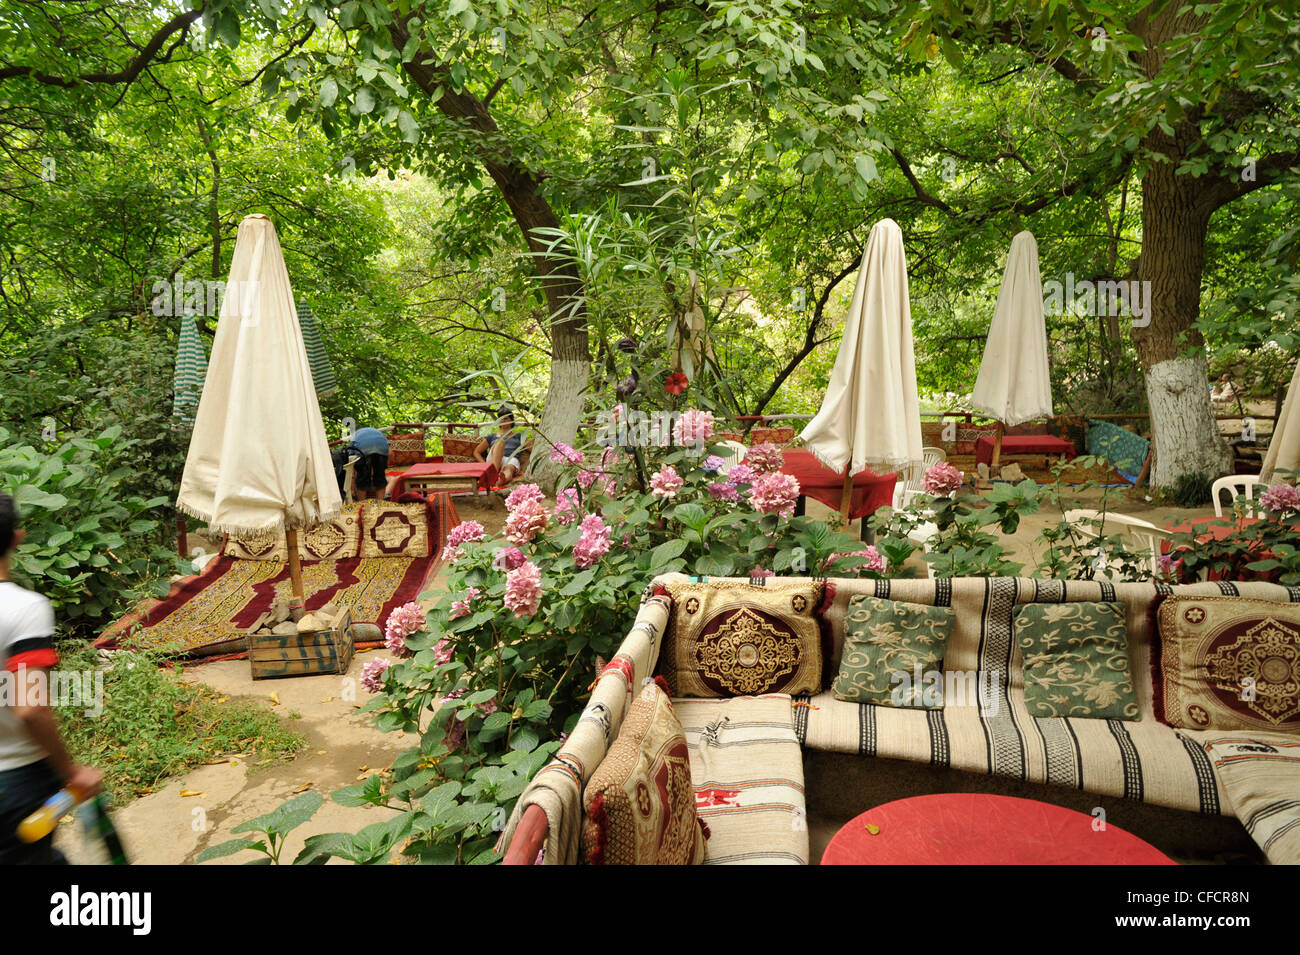 Waterfall at Setti Fatma, open air teahouse with plushy cushions at High Atlas, Morocco, Africa Stock Photo